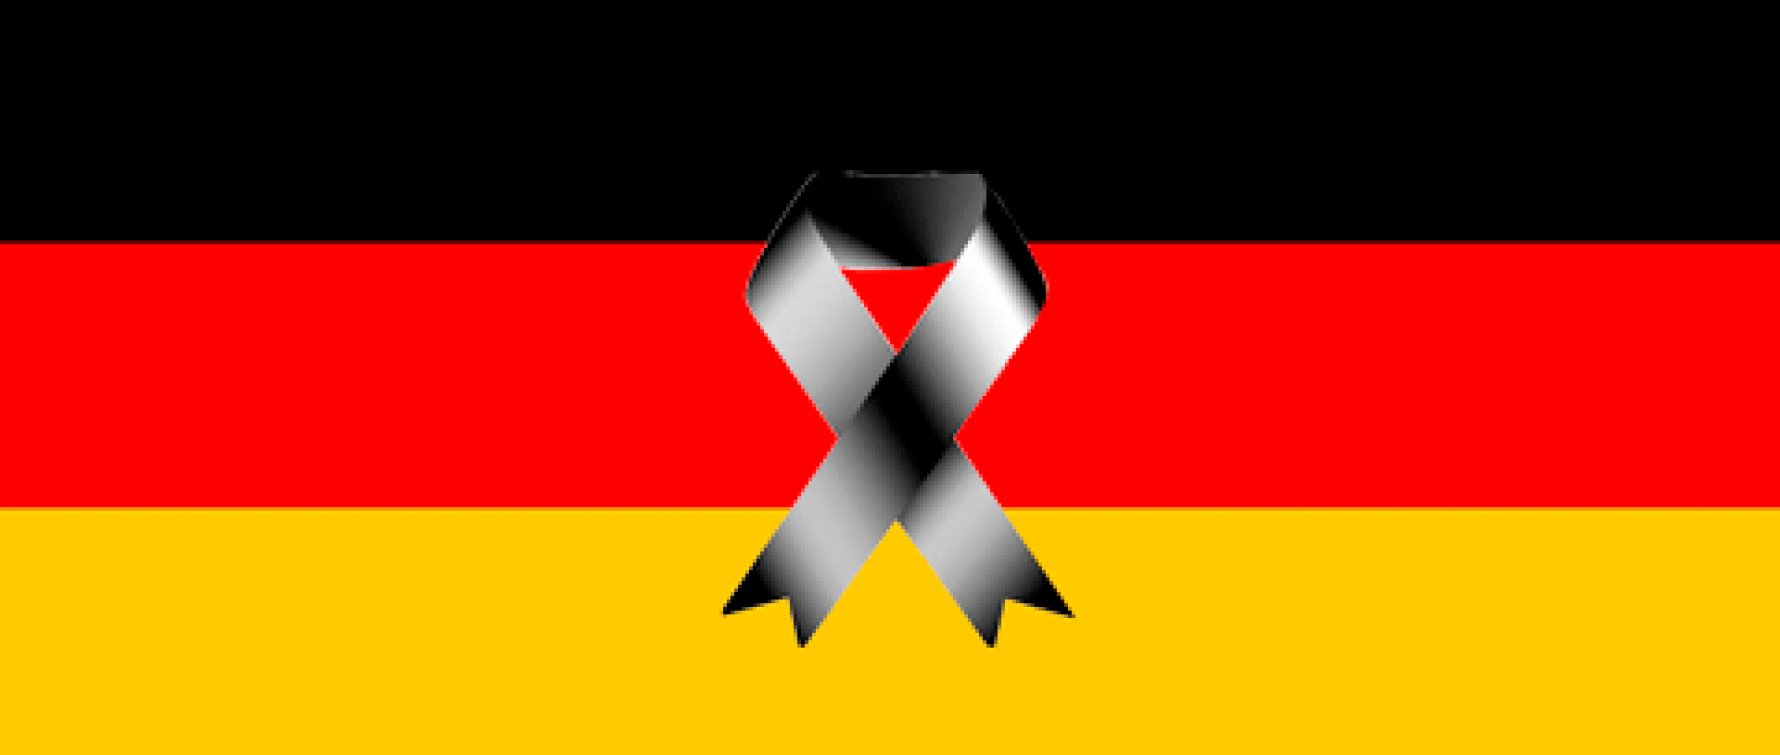 The IDC-CDI condemns the attack carried out on 19th December in Berlin